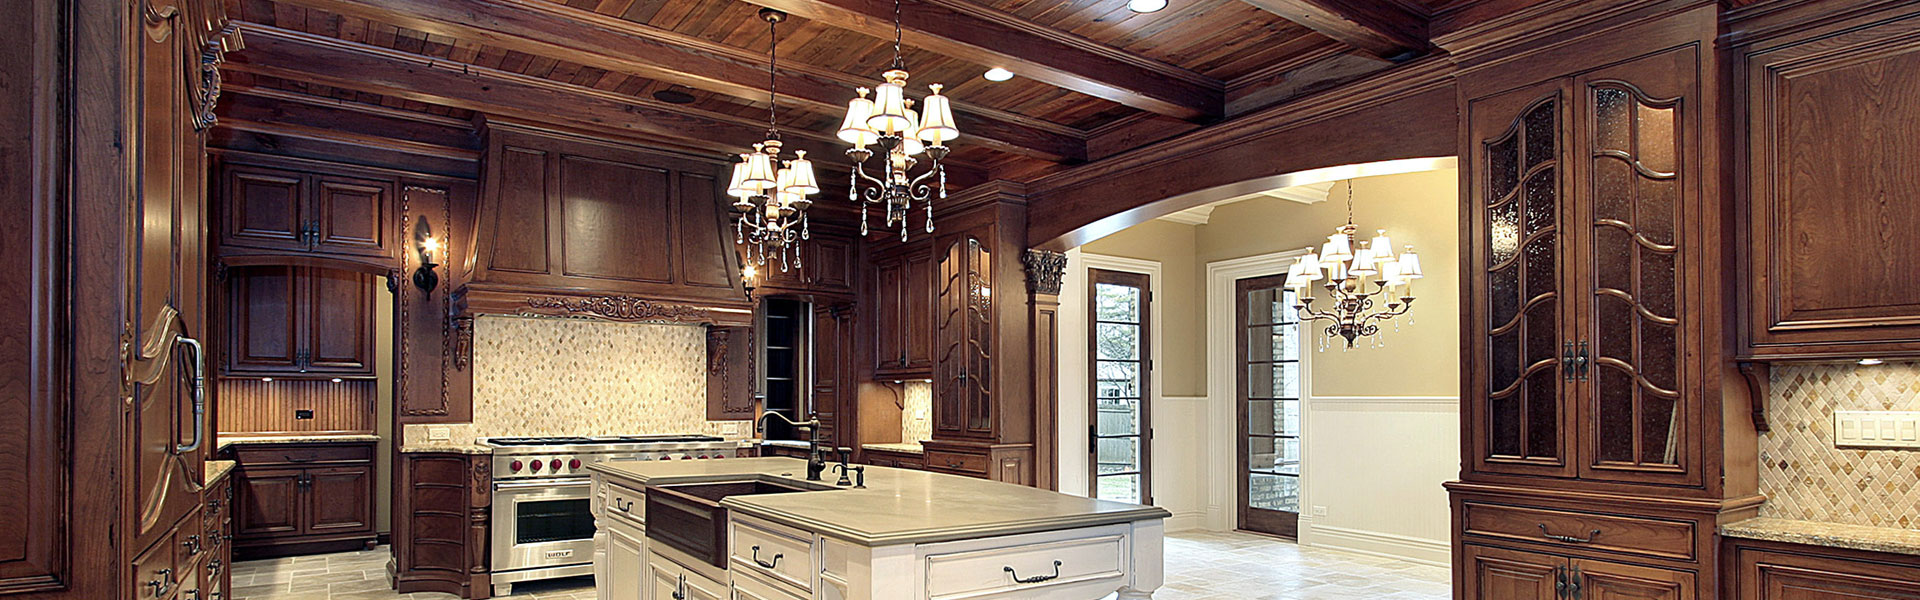 Kitchen With Wood Ceilings